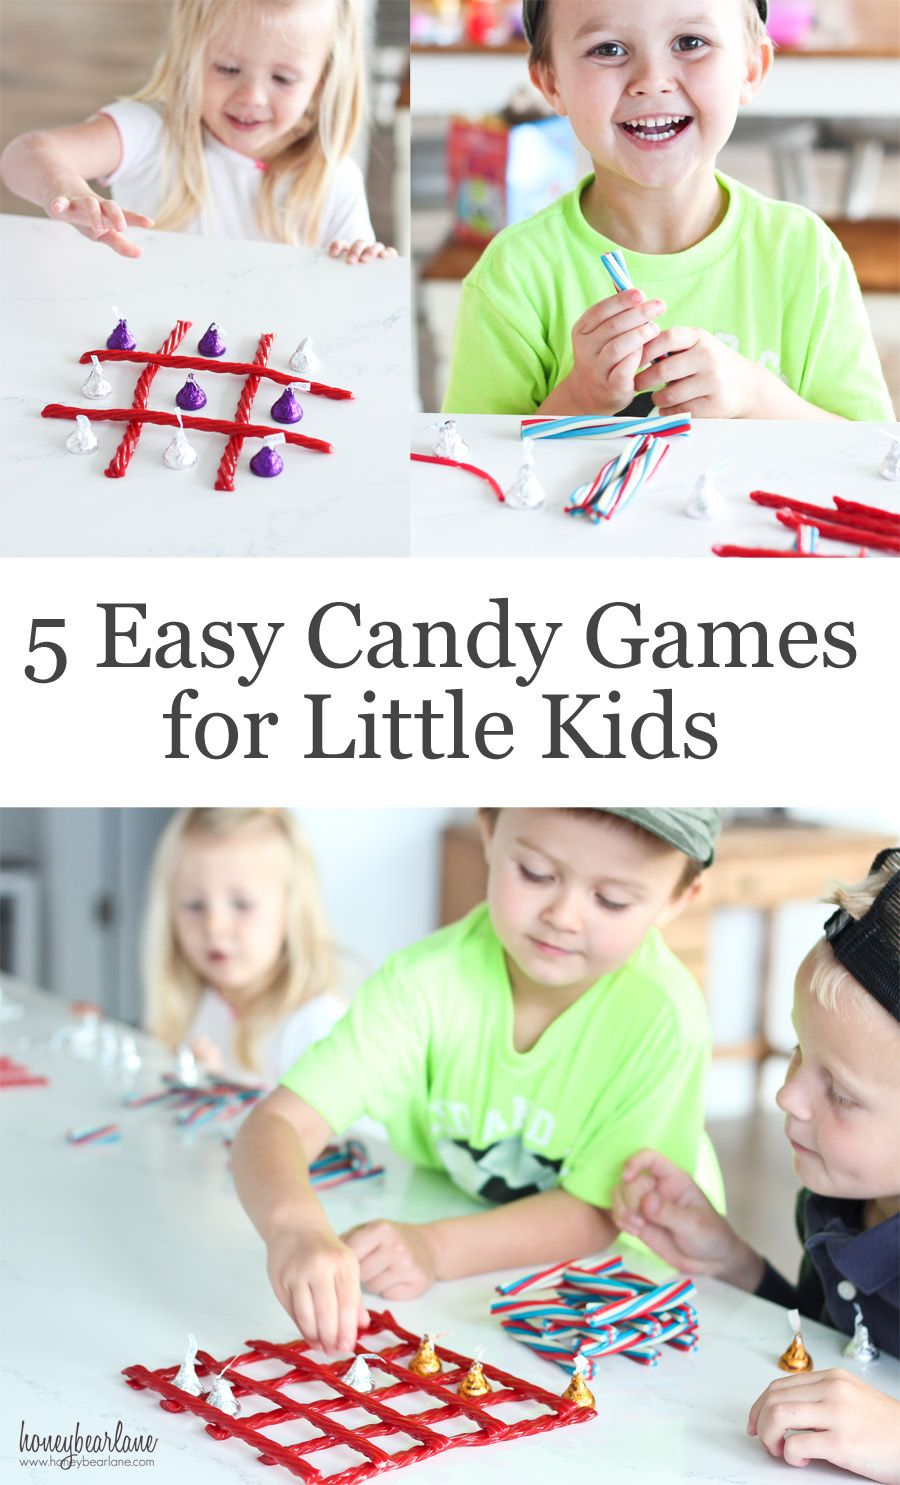 5 Games to Play with Candy | Plays